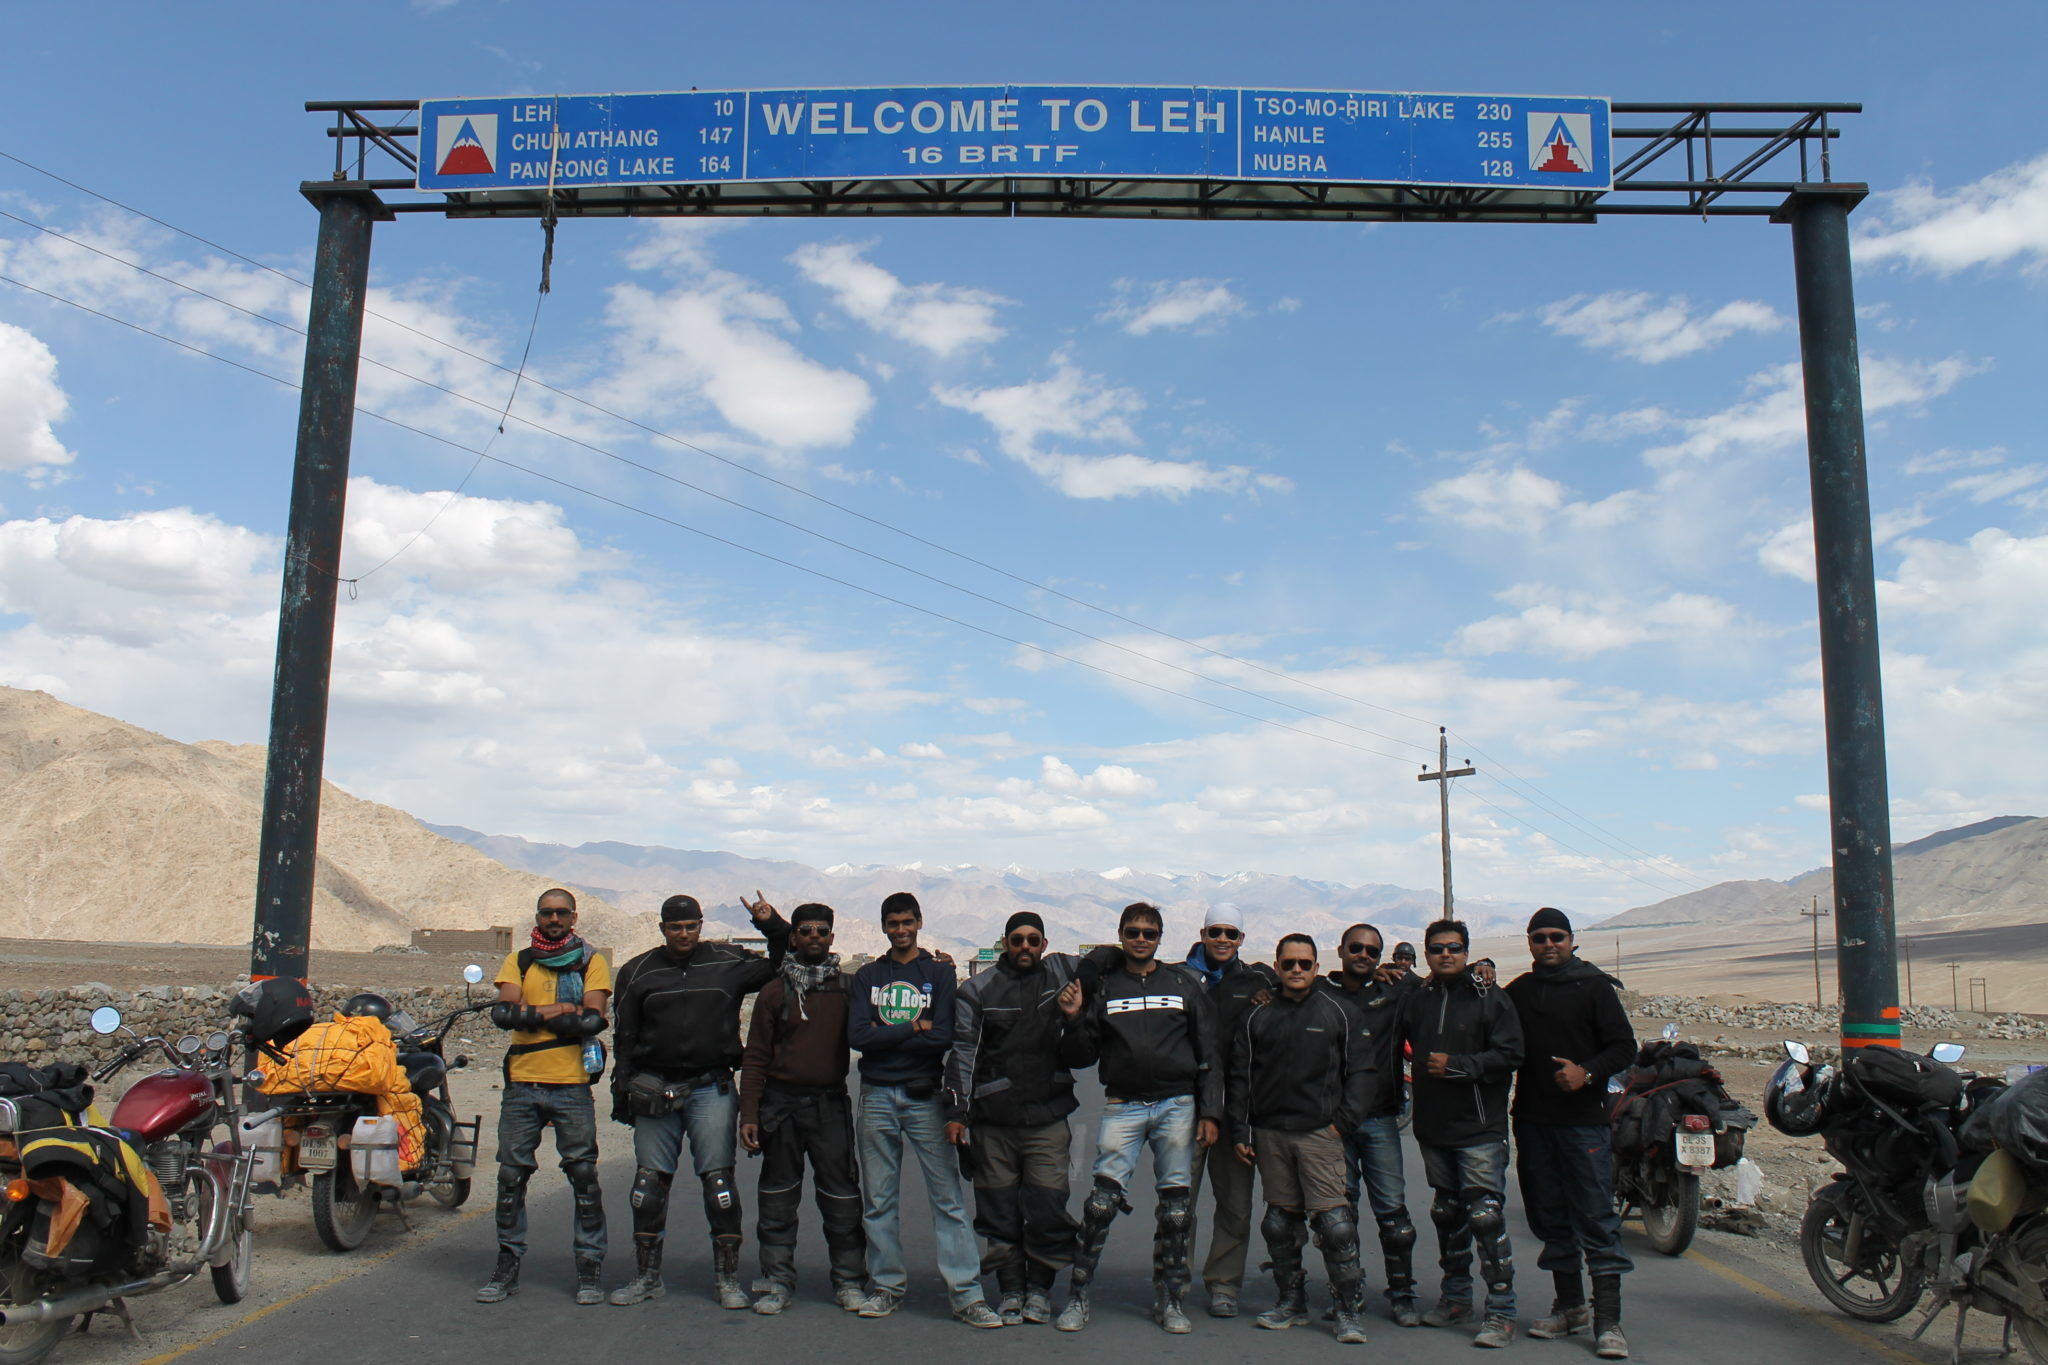 the entrance to leh